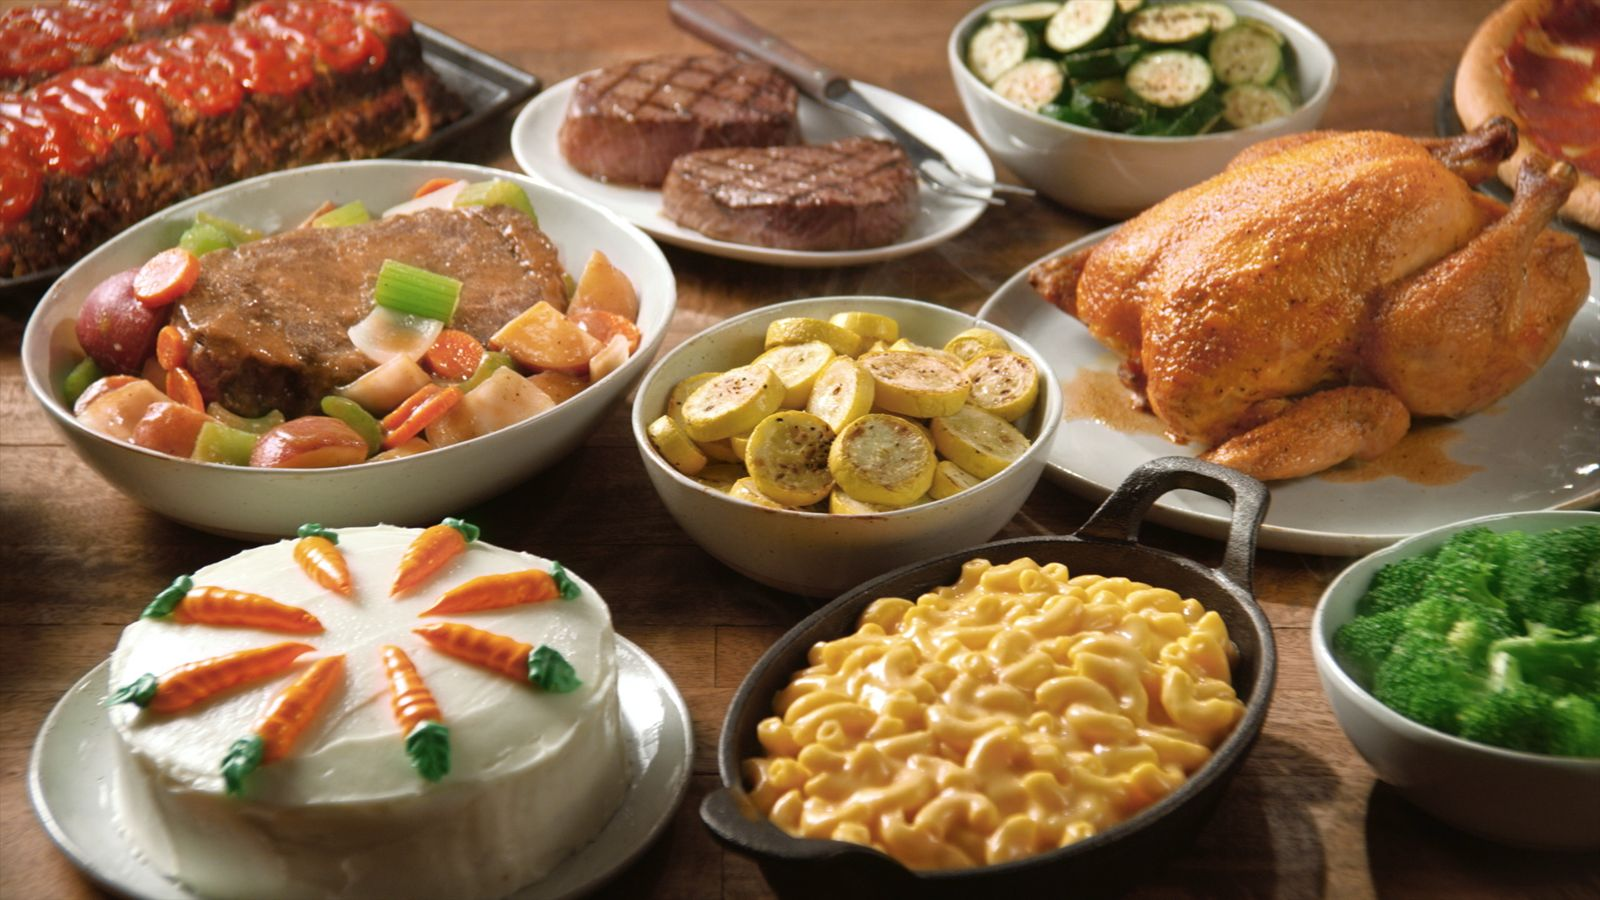 Golden Corral hours and Golden Corral locations along with phone number and map with driving directions.